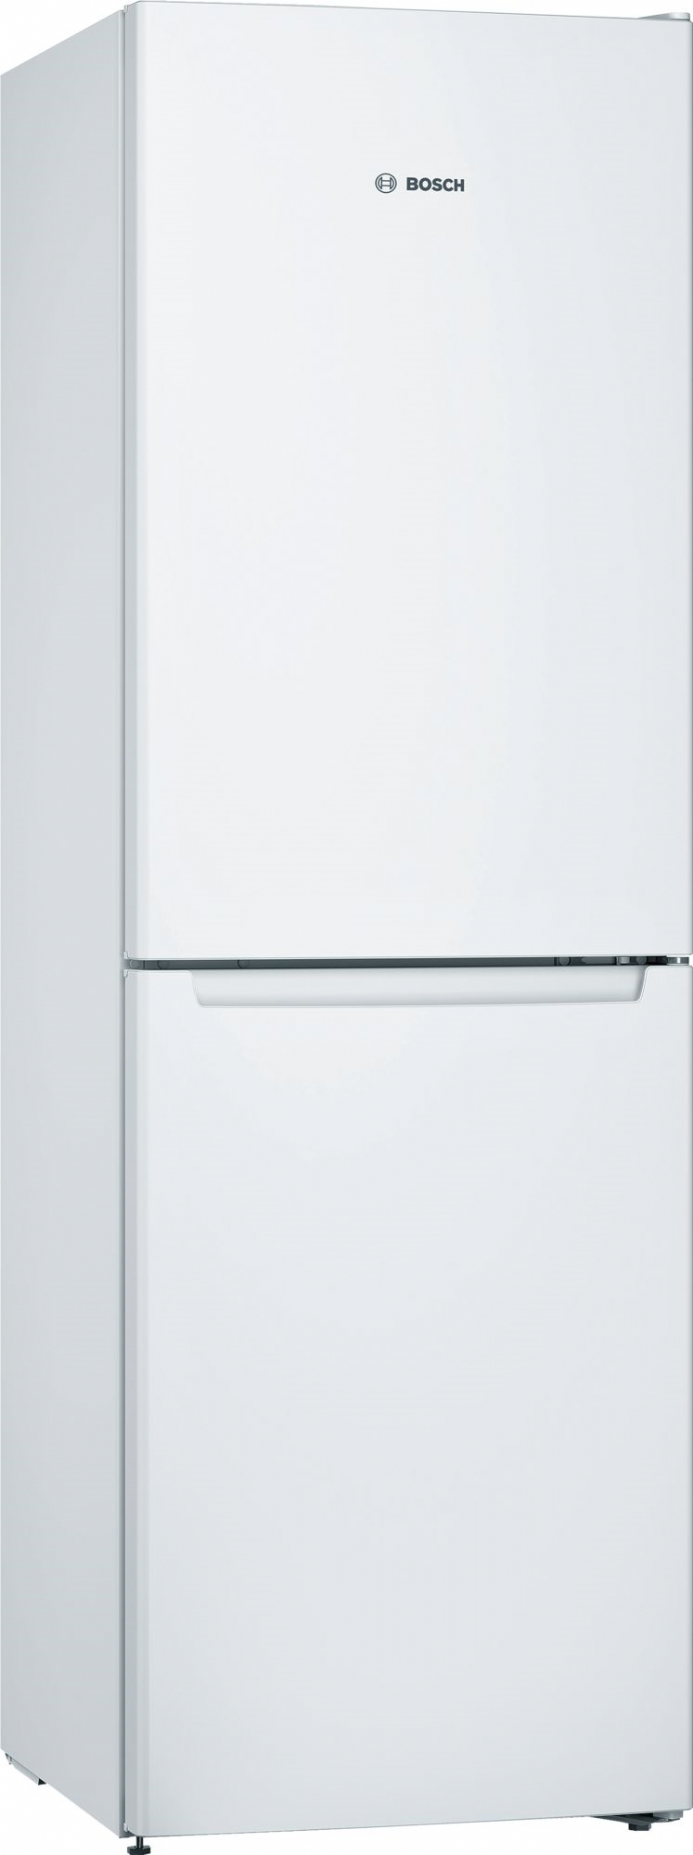 Bosch KGN34NWEAG Serie 2 50/50 Split 186cm High Frost Free Fridge Freezer - White